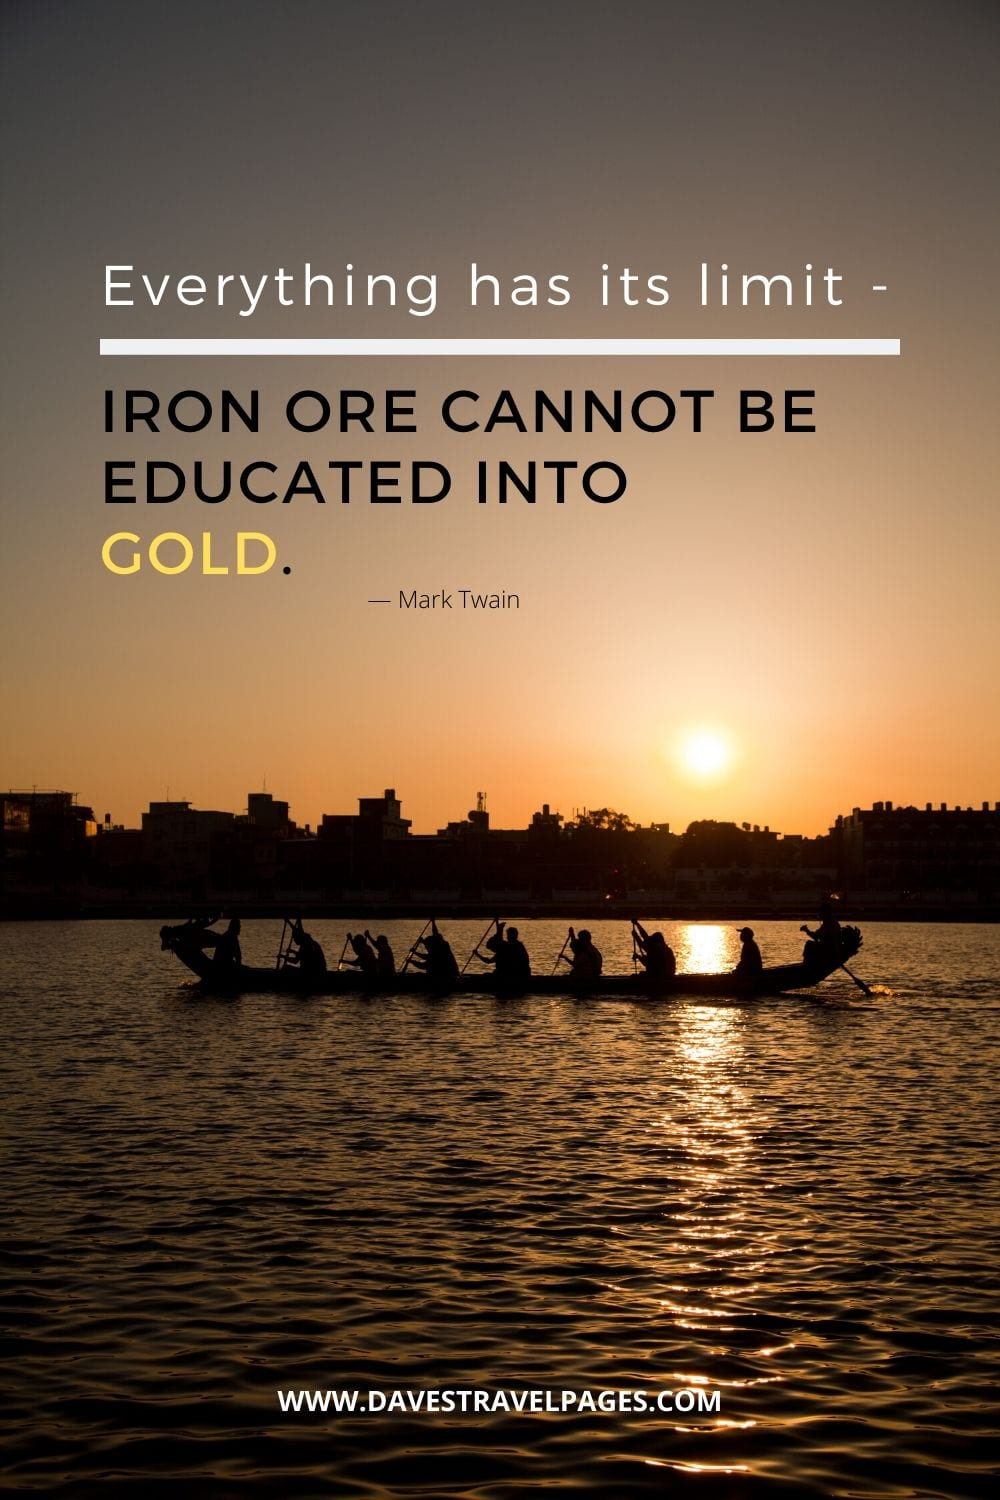 """Everything has its limit — iron ore cannot be educated into gold."" M. Twain"